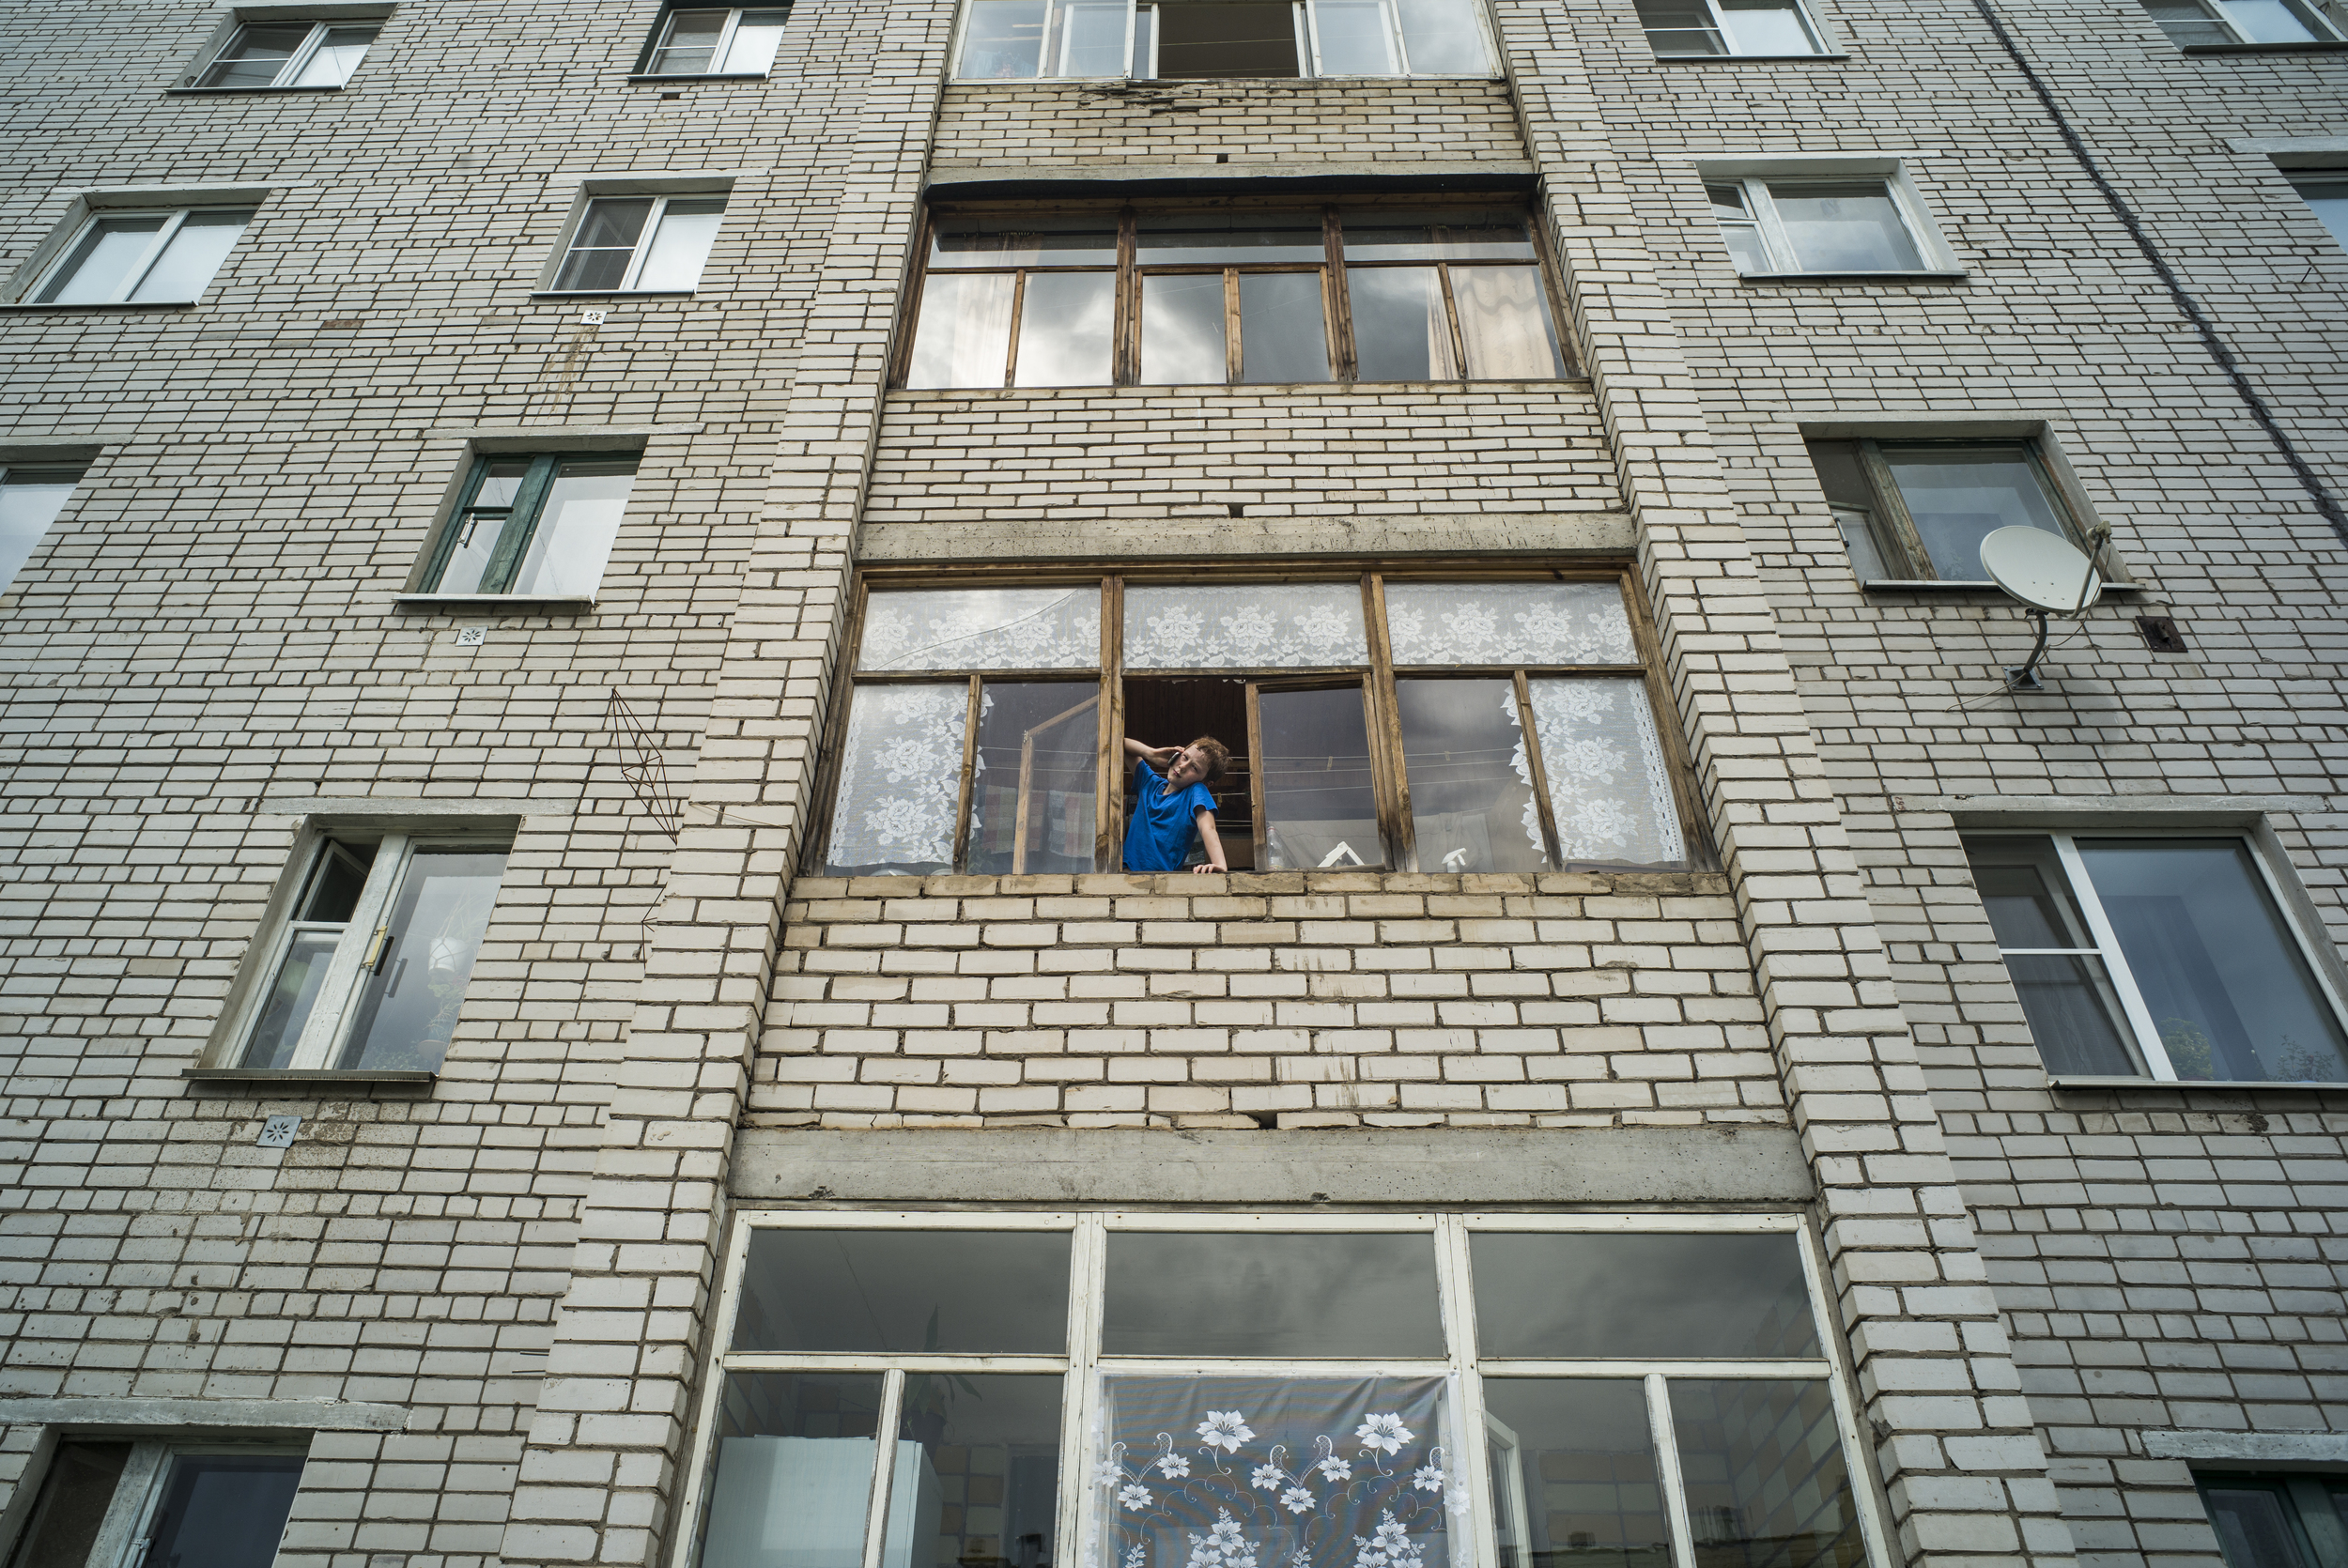 A young boy gazes out of the window of an apartment complex in the early morning of May 30, 2015 in the town of Kotlas in Arkhangelsk Oblast, Russia. (© Alicia Afshar)